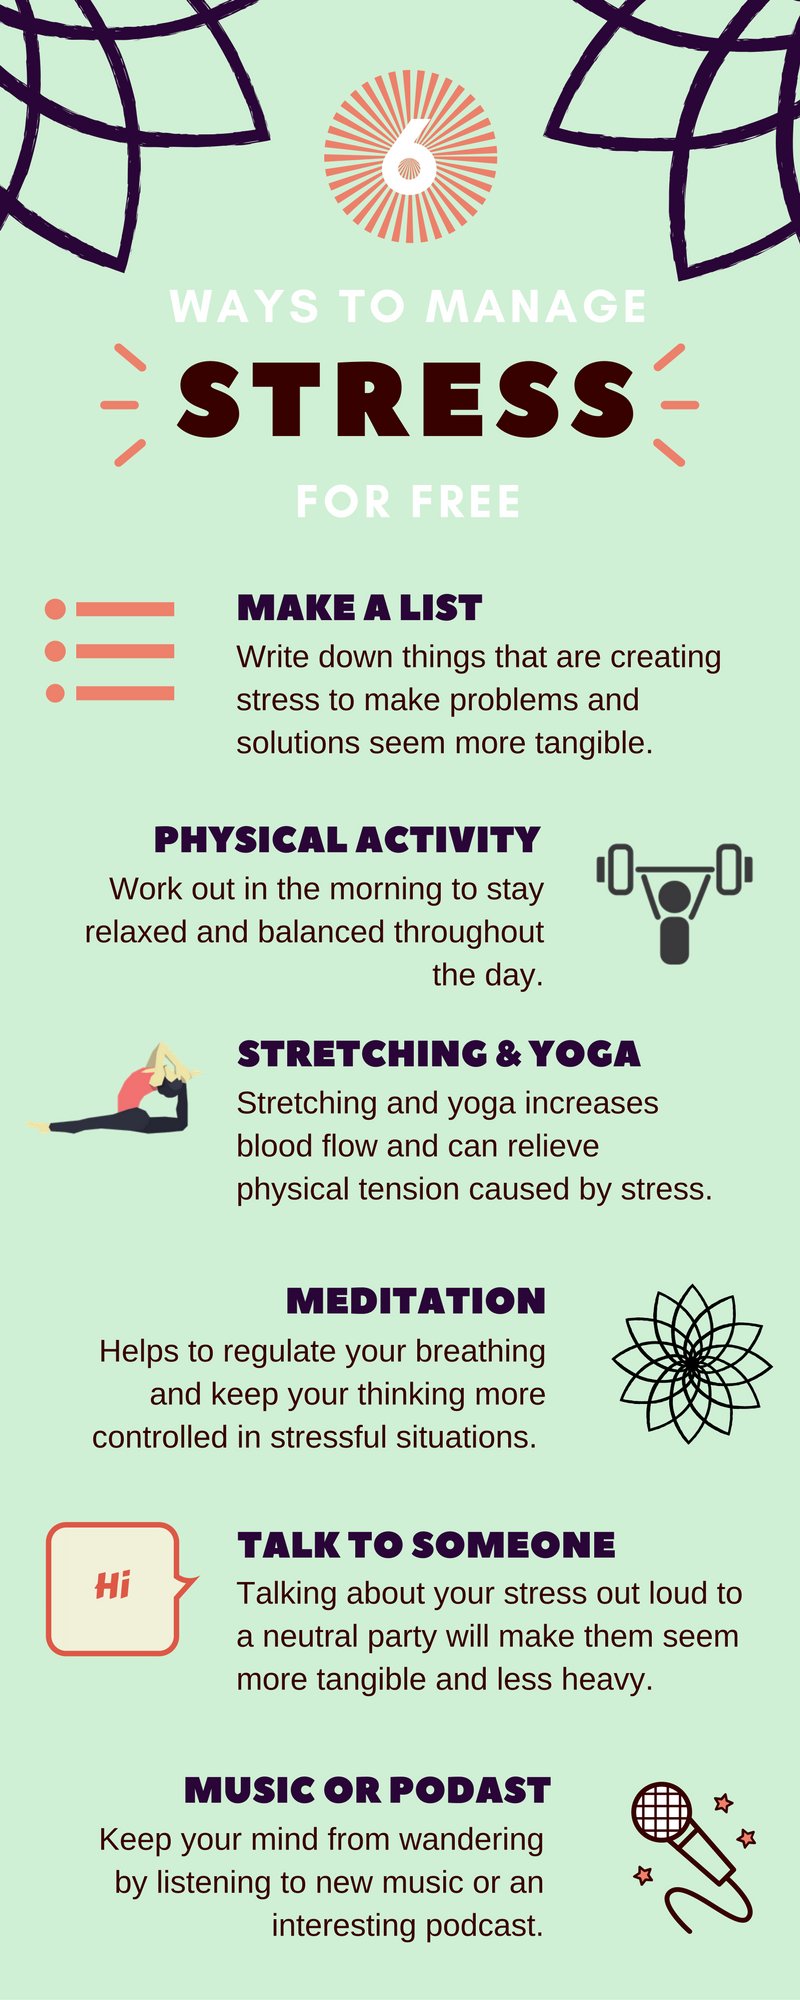 How To Manage Stress Feeling Signs, Symptoms, or Causes